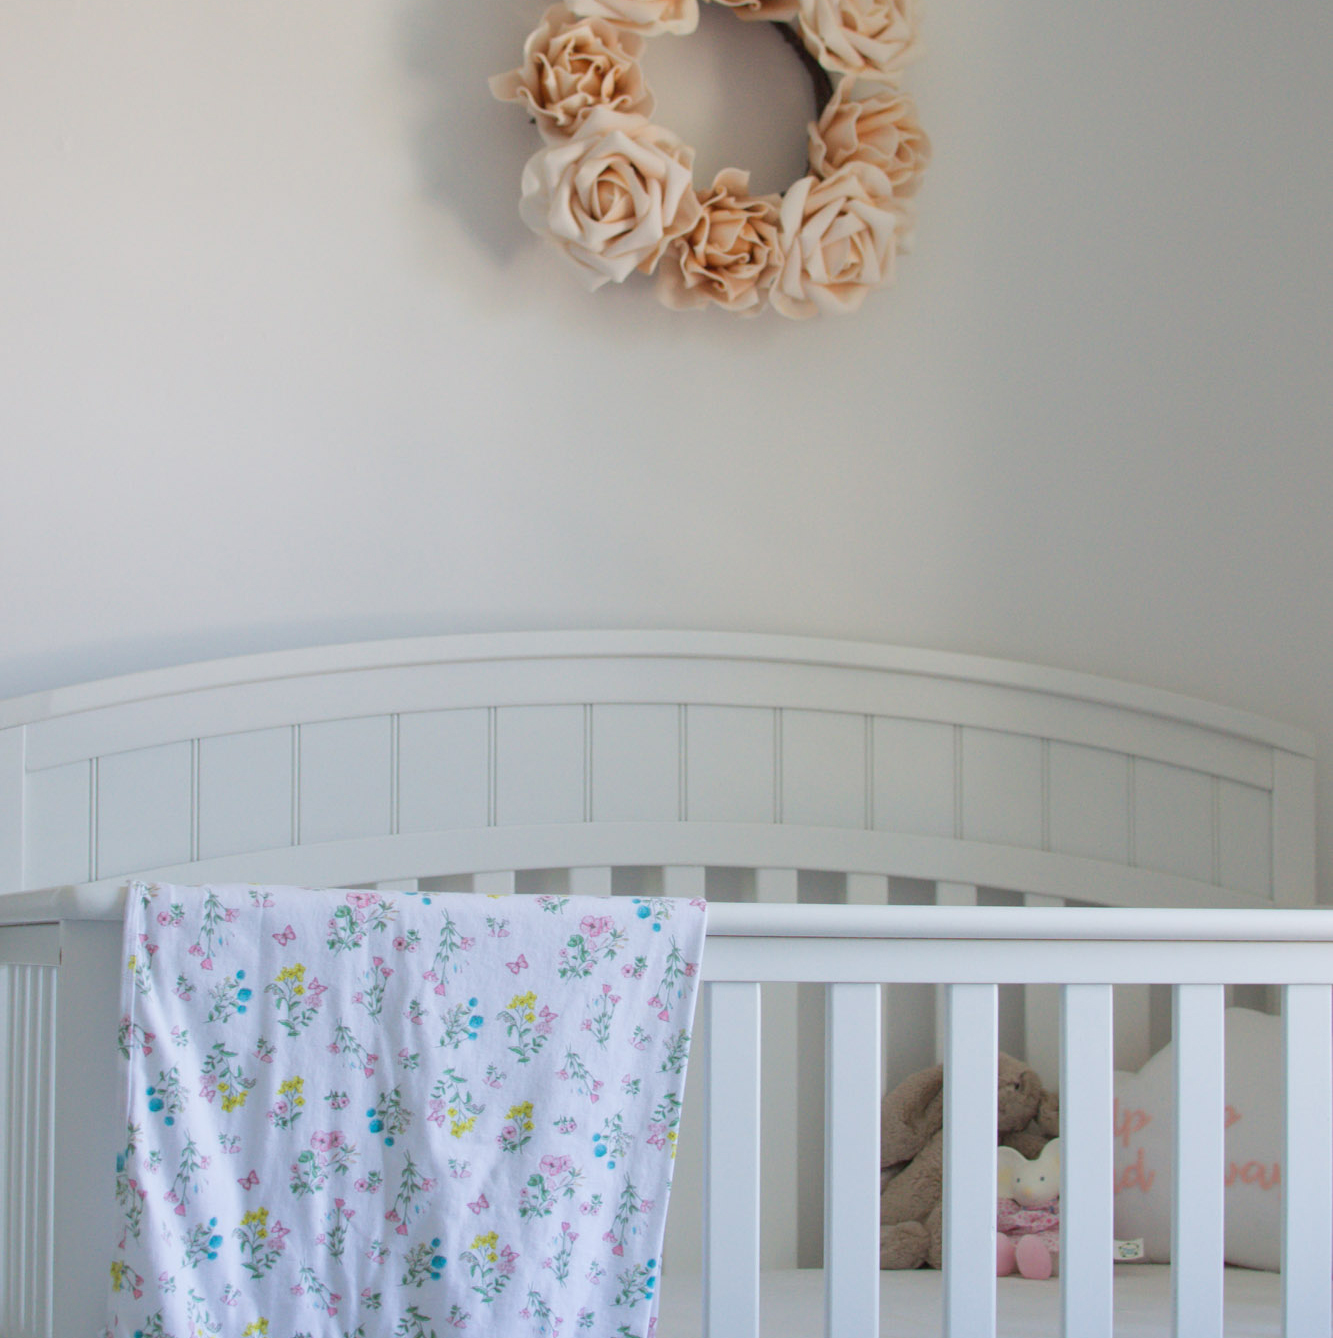 Our Nursery: Its All In The Details